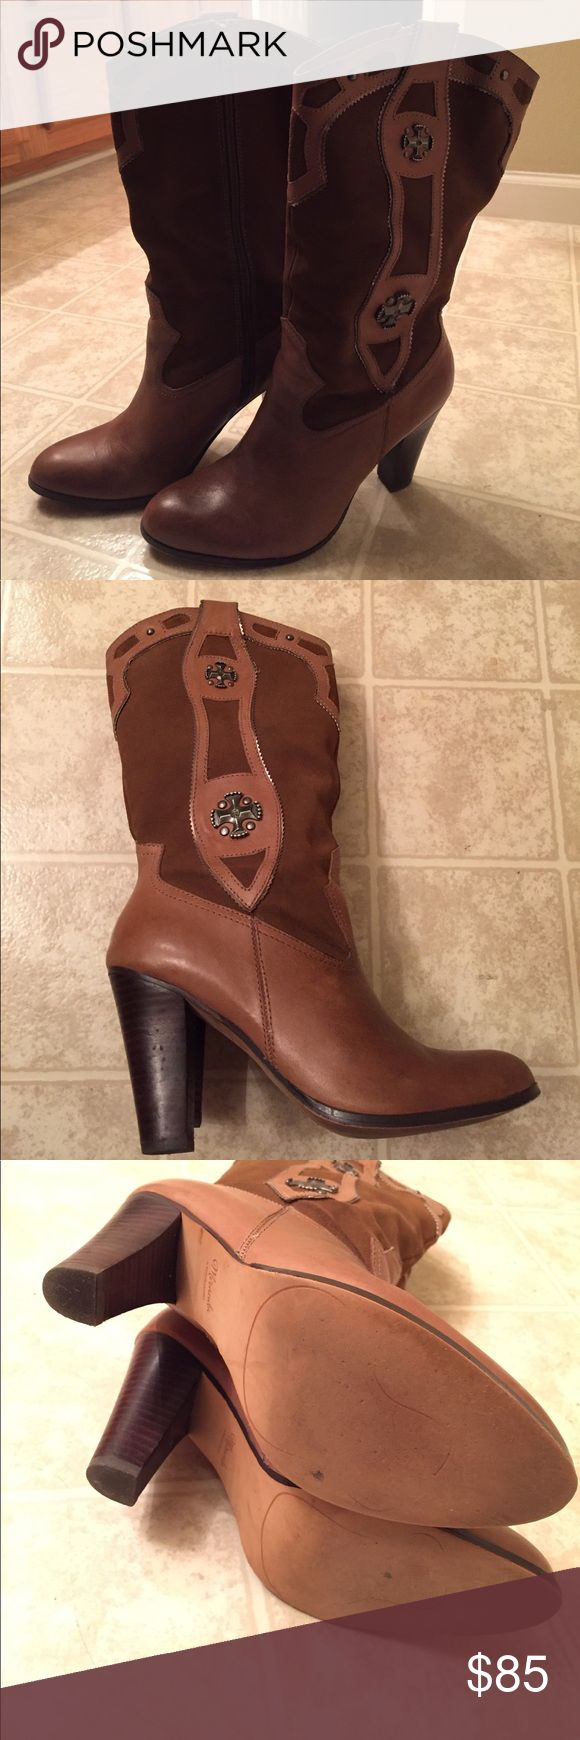 Beautiful Miranda Lambert boots Used them for two occasions only (two country music concerts) Miranda Lambert Shoes Heeled Boots